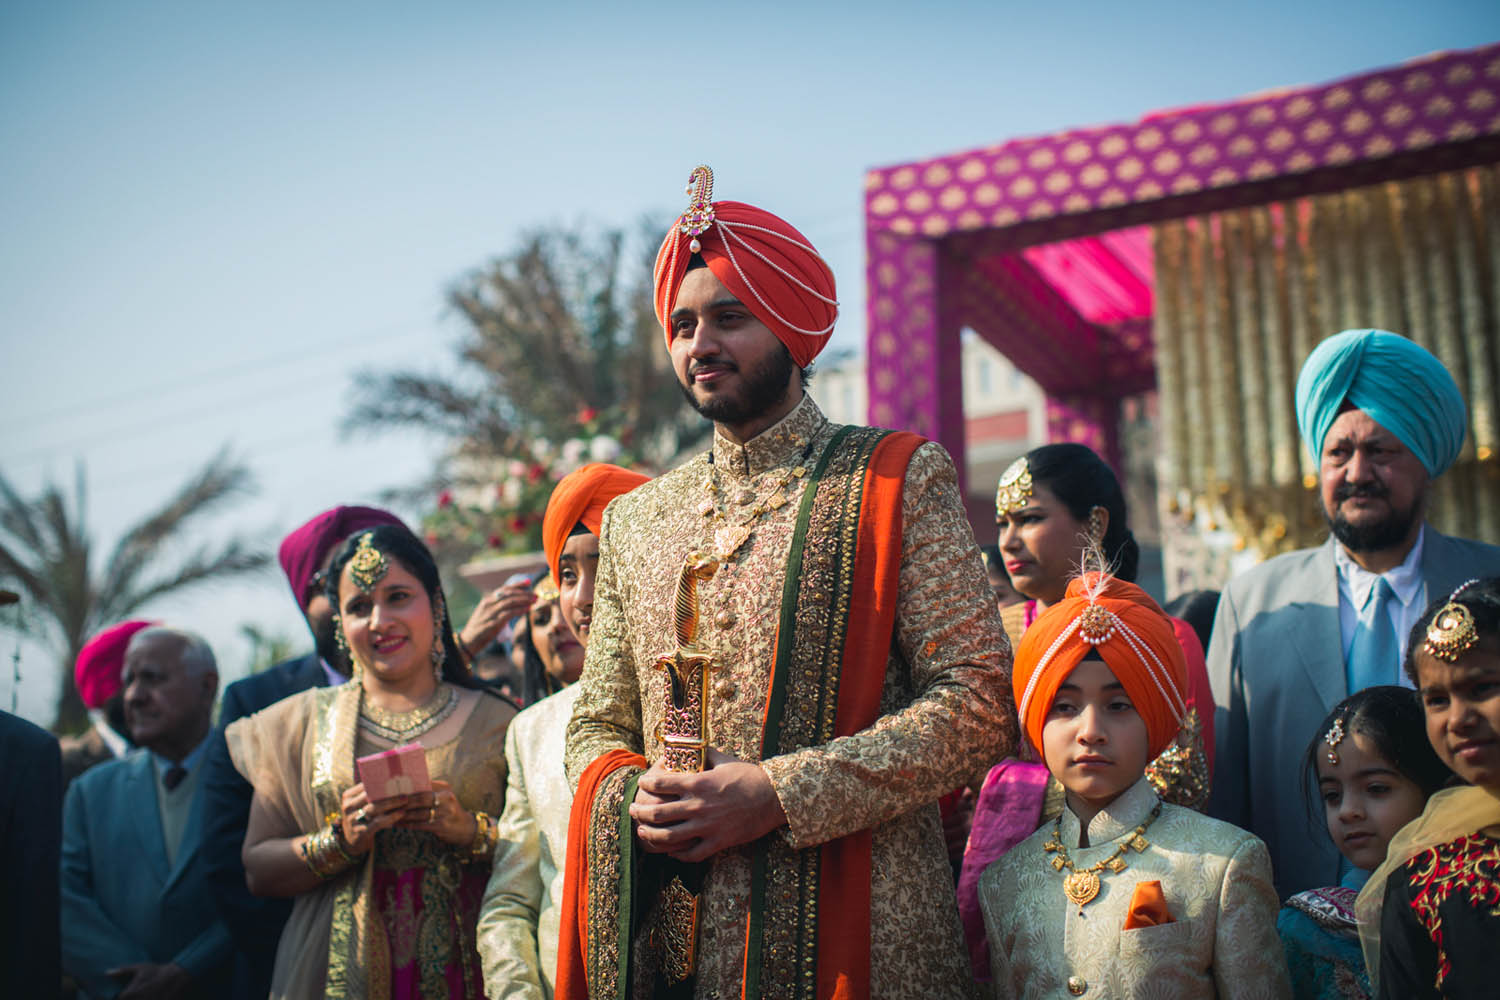 punjab_wedding37.jpg